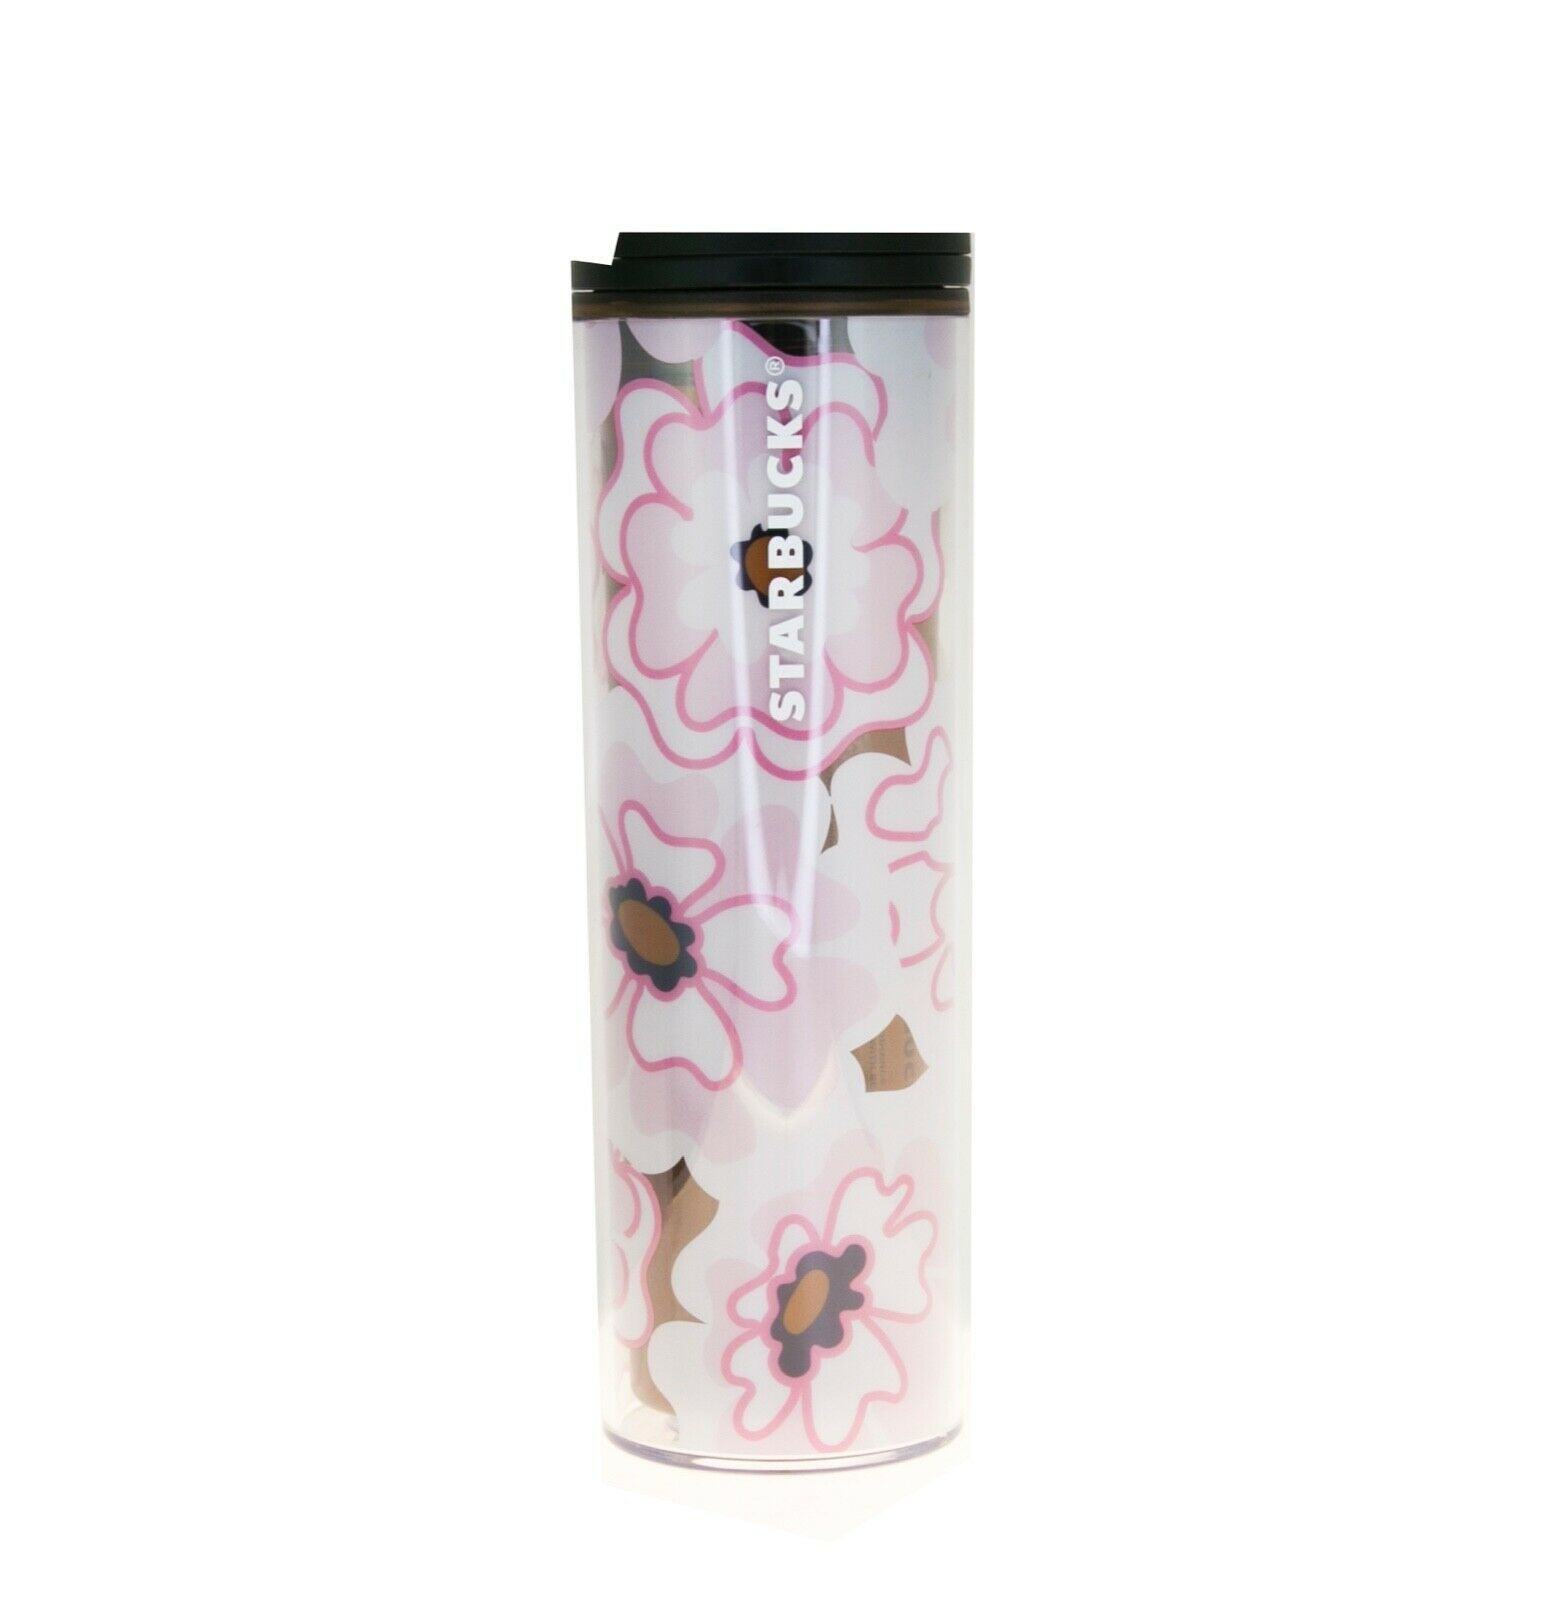 Primary image for Starbucks Pink Floral Summer Gold Foil Acrylic Travel Tumbler Cup 16 oz Grande